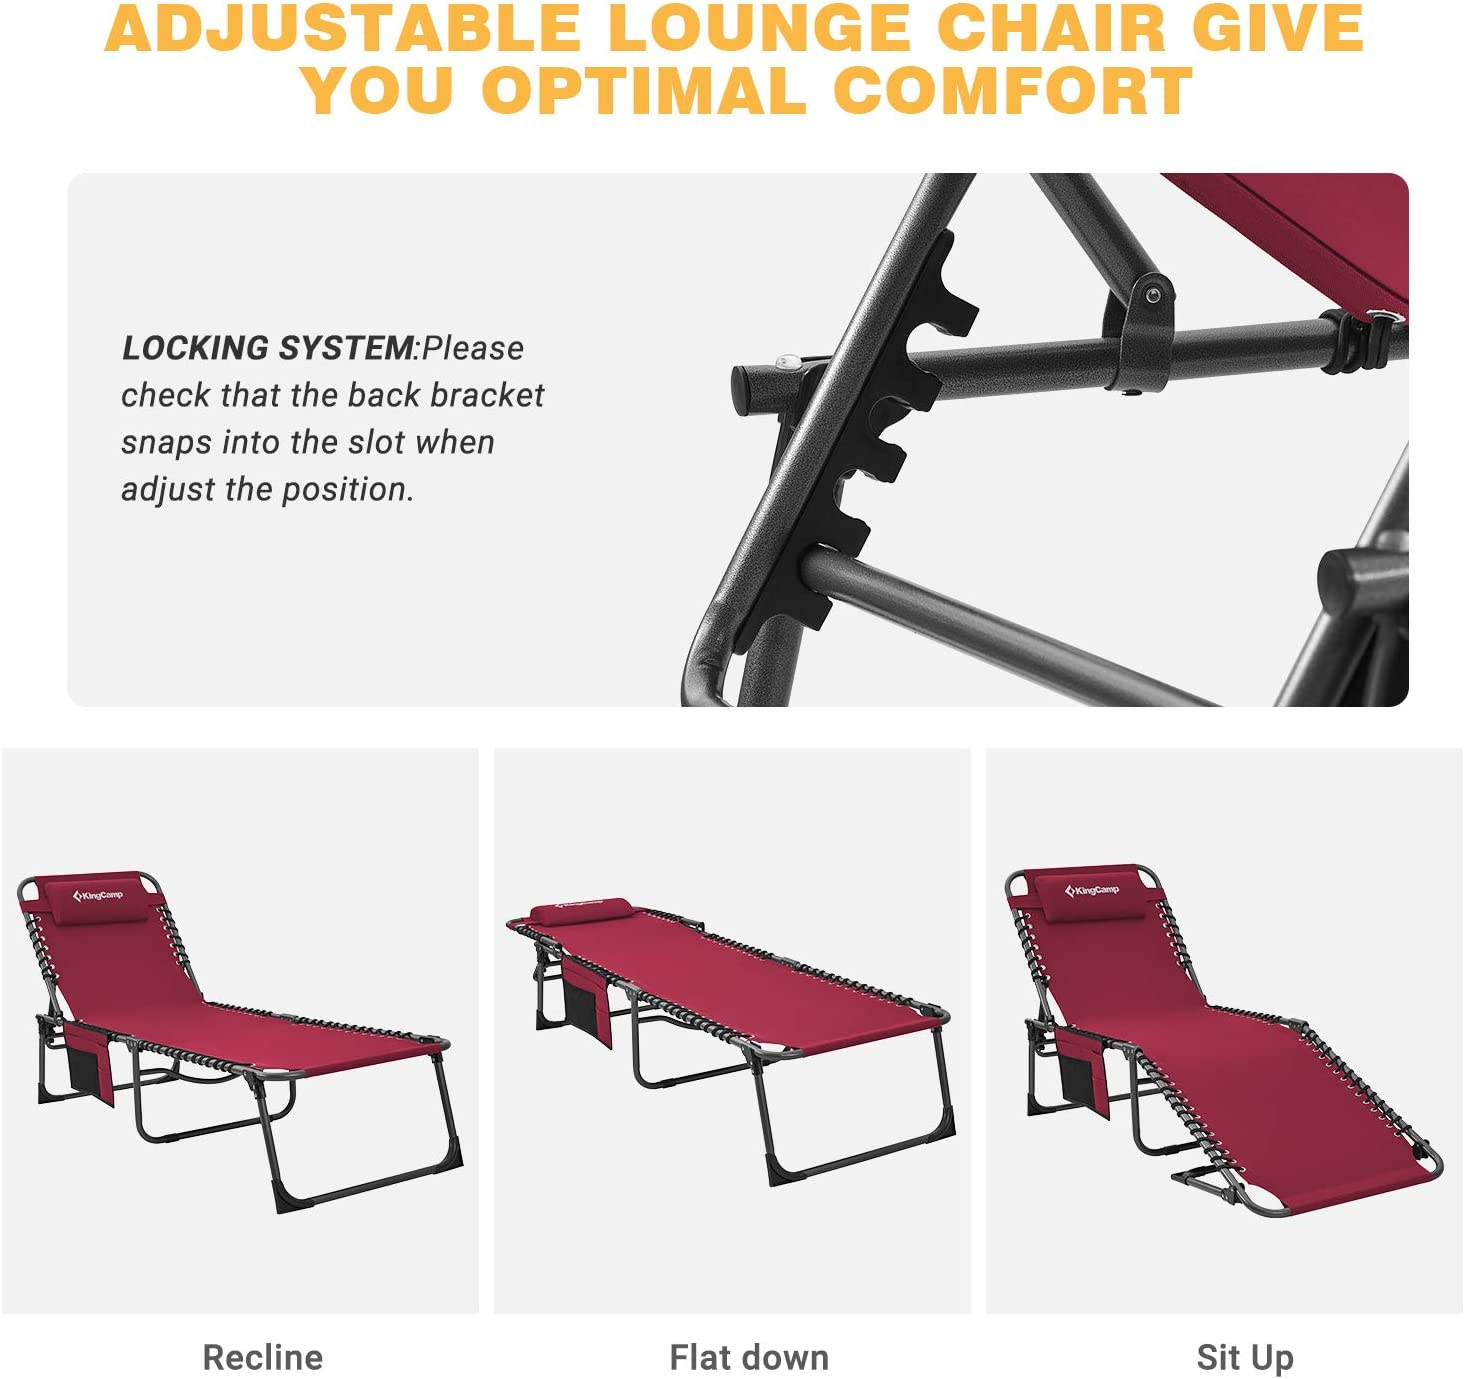 KingCamp 4-Fold Red Folding Outdoor Chaise Lounge Chair for Beach, Sunbathing, Patio, Pool, Lawn, Deck, Portable Lightweight Heavy-Duty Adjustable Camping Reclining Chair with Pillow : Garden & Outdoor